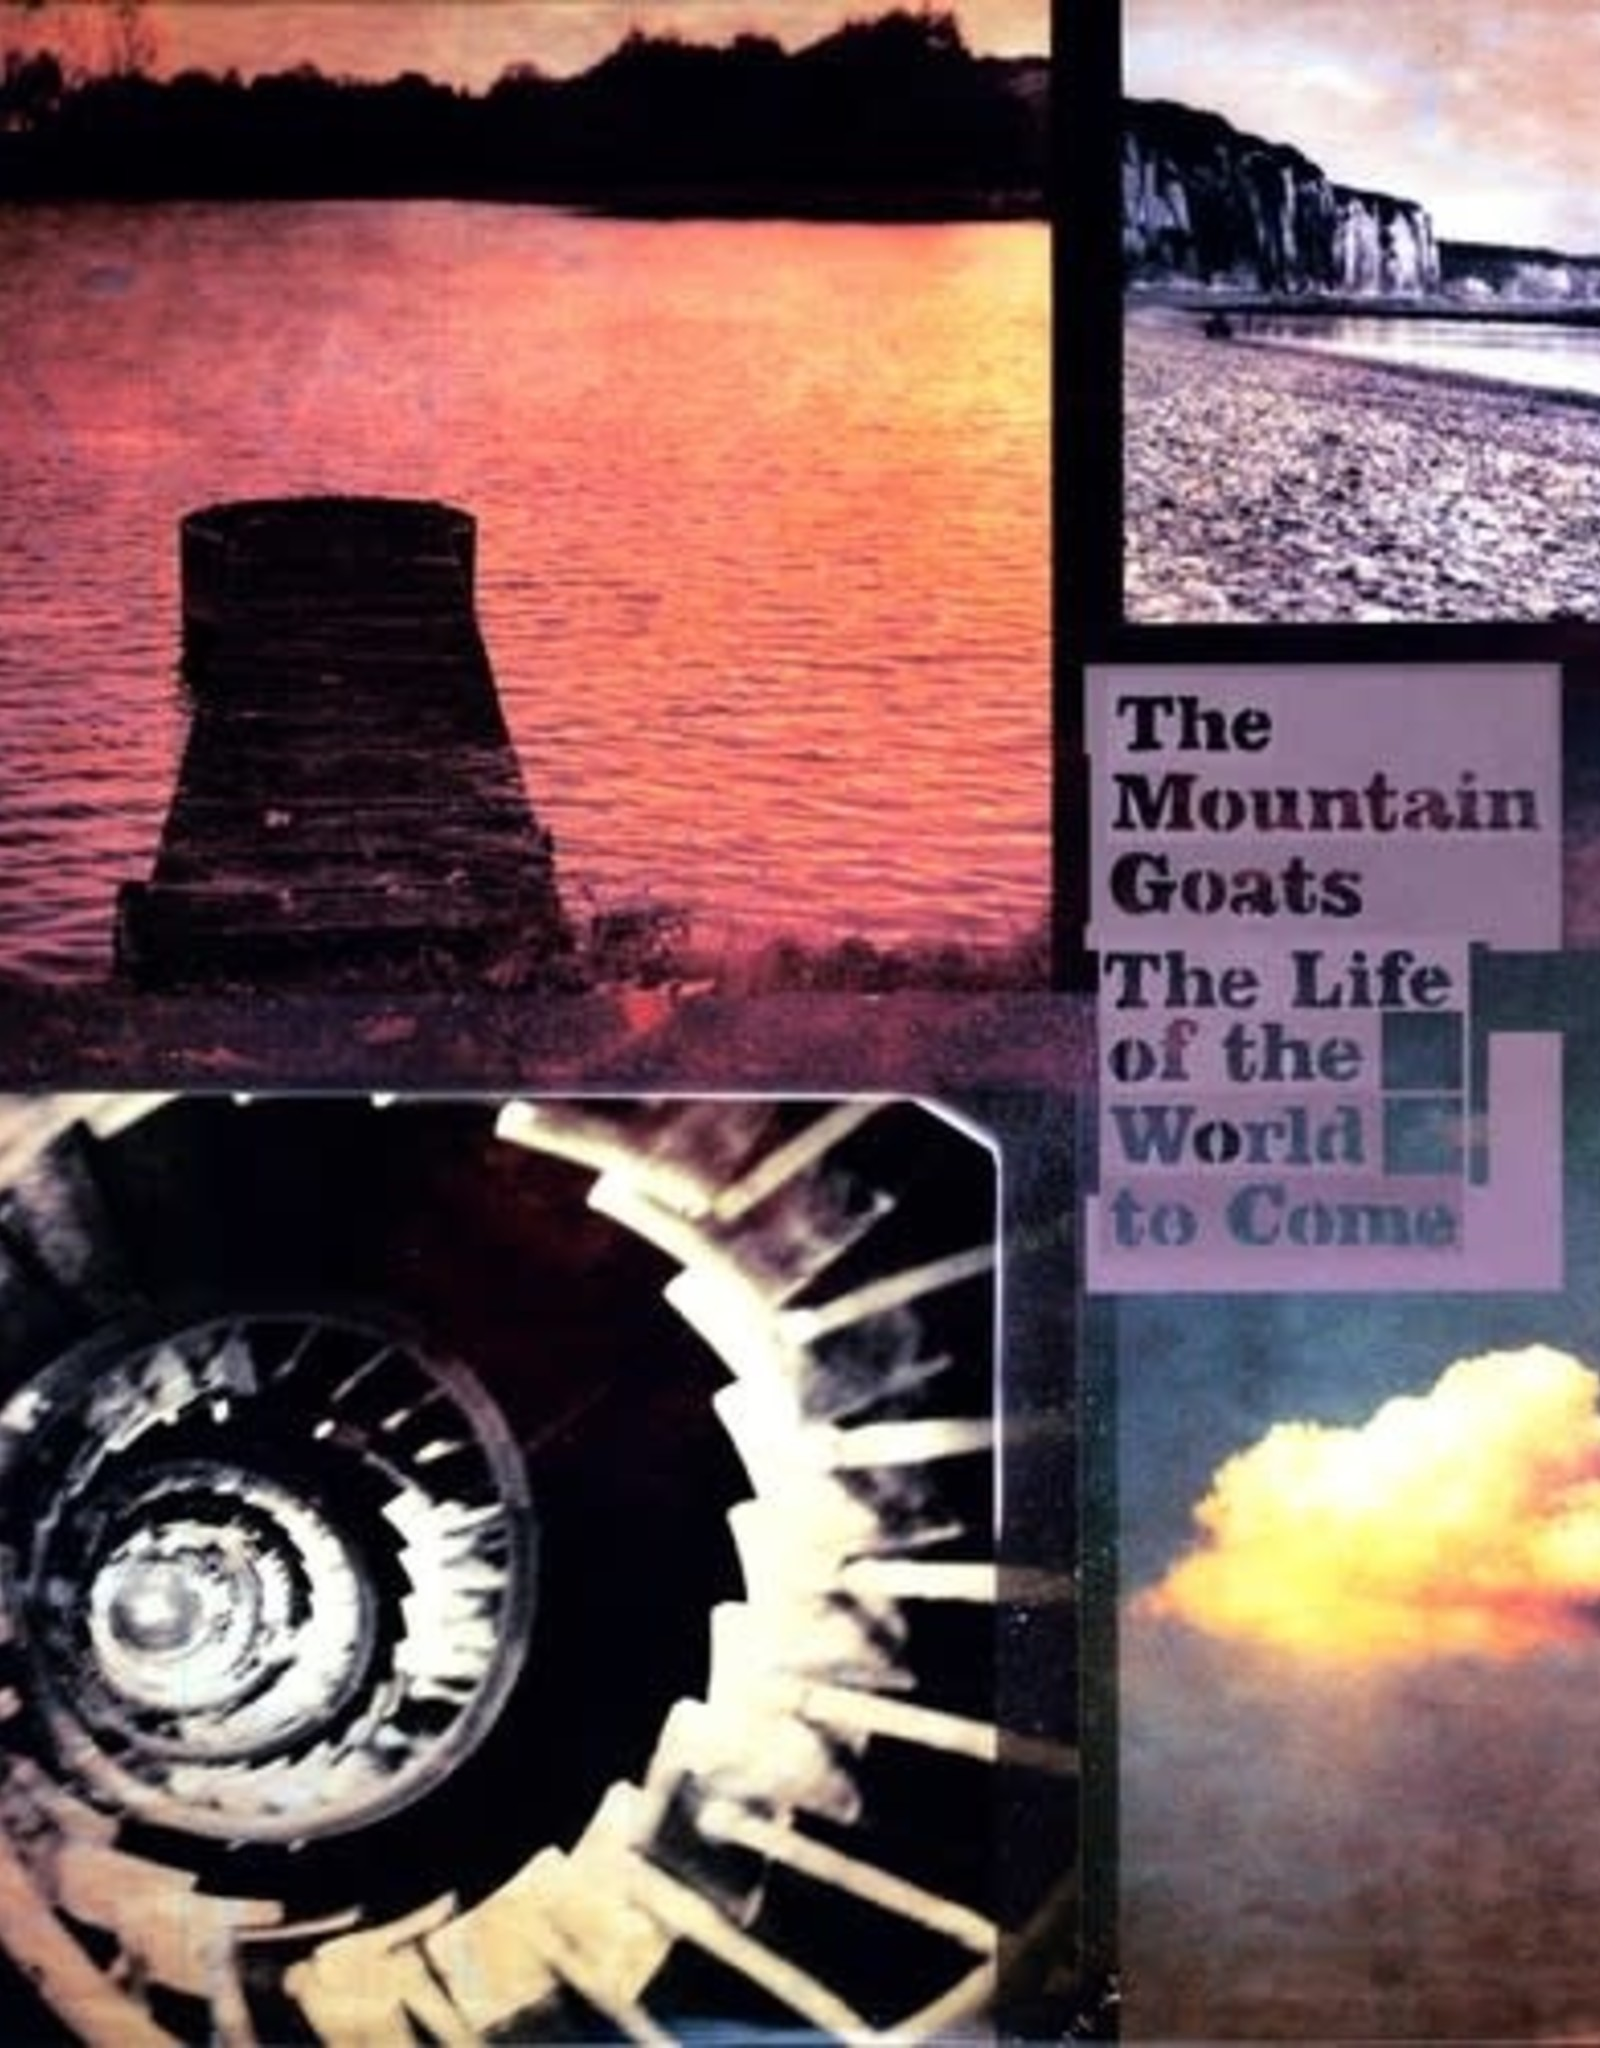 The Mountain Goats - The Life of the World to Come